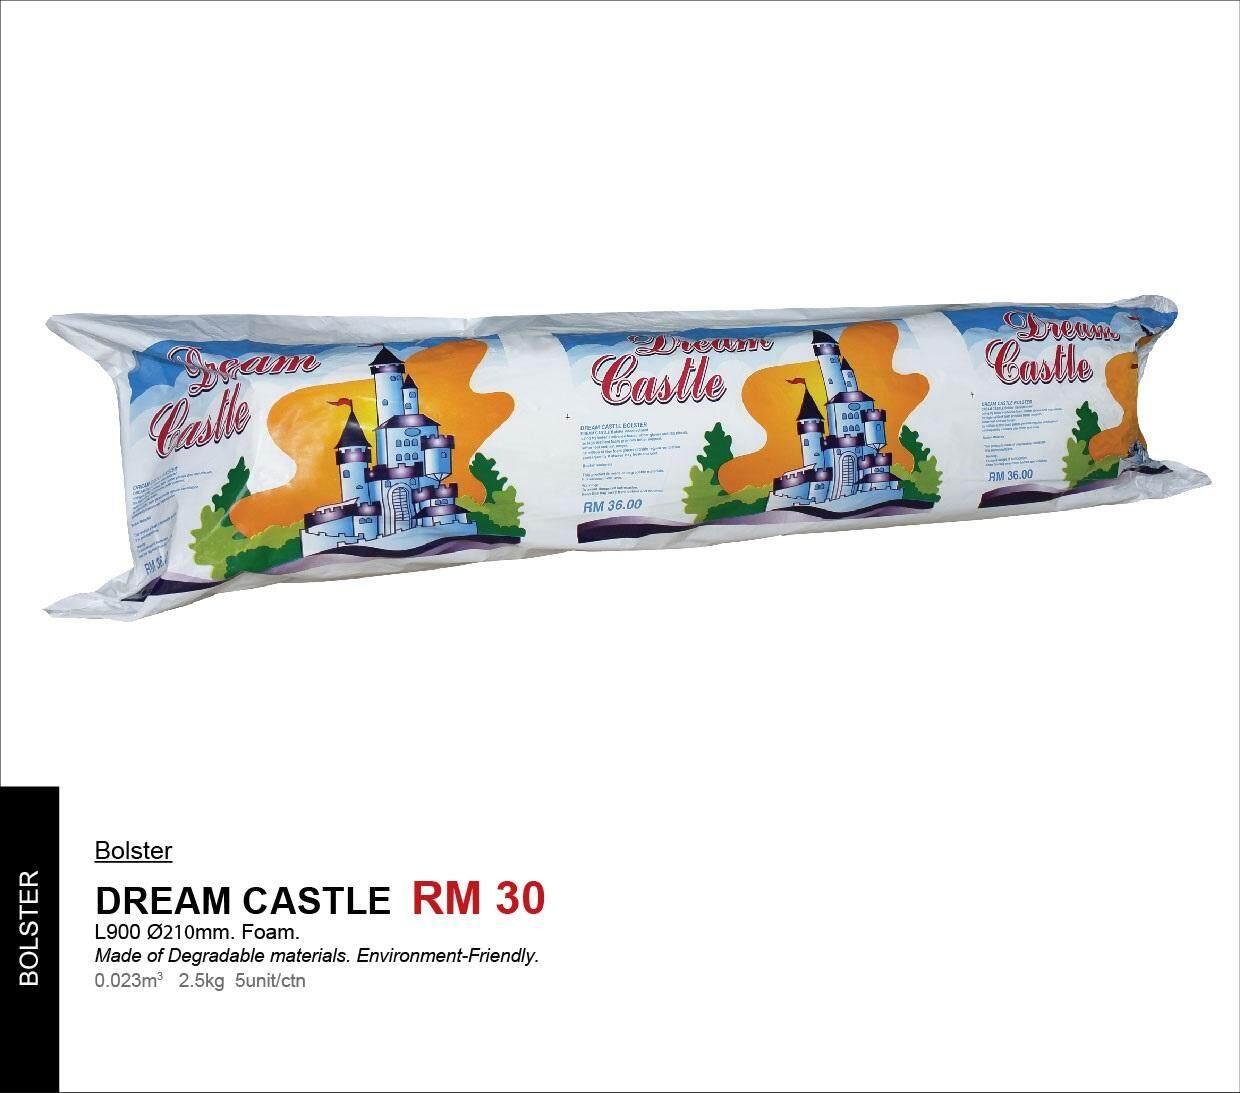 21_pillow-bolster_dreamcastle.jpg